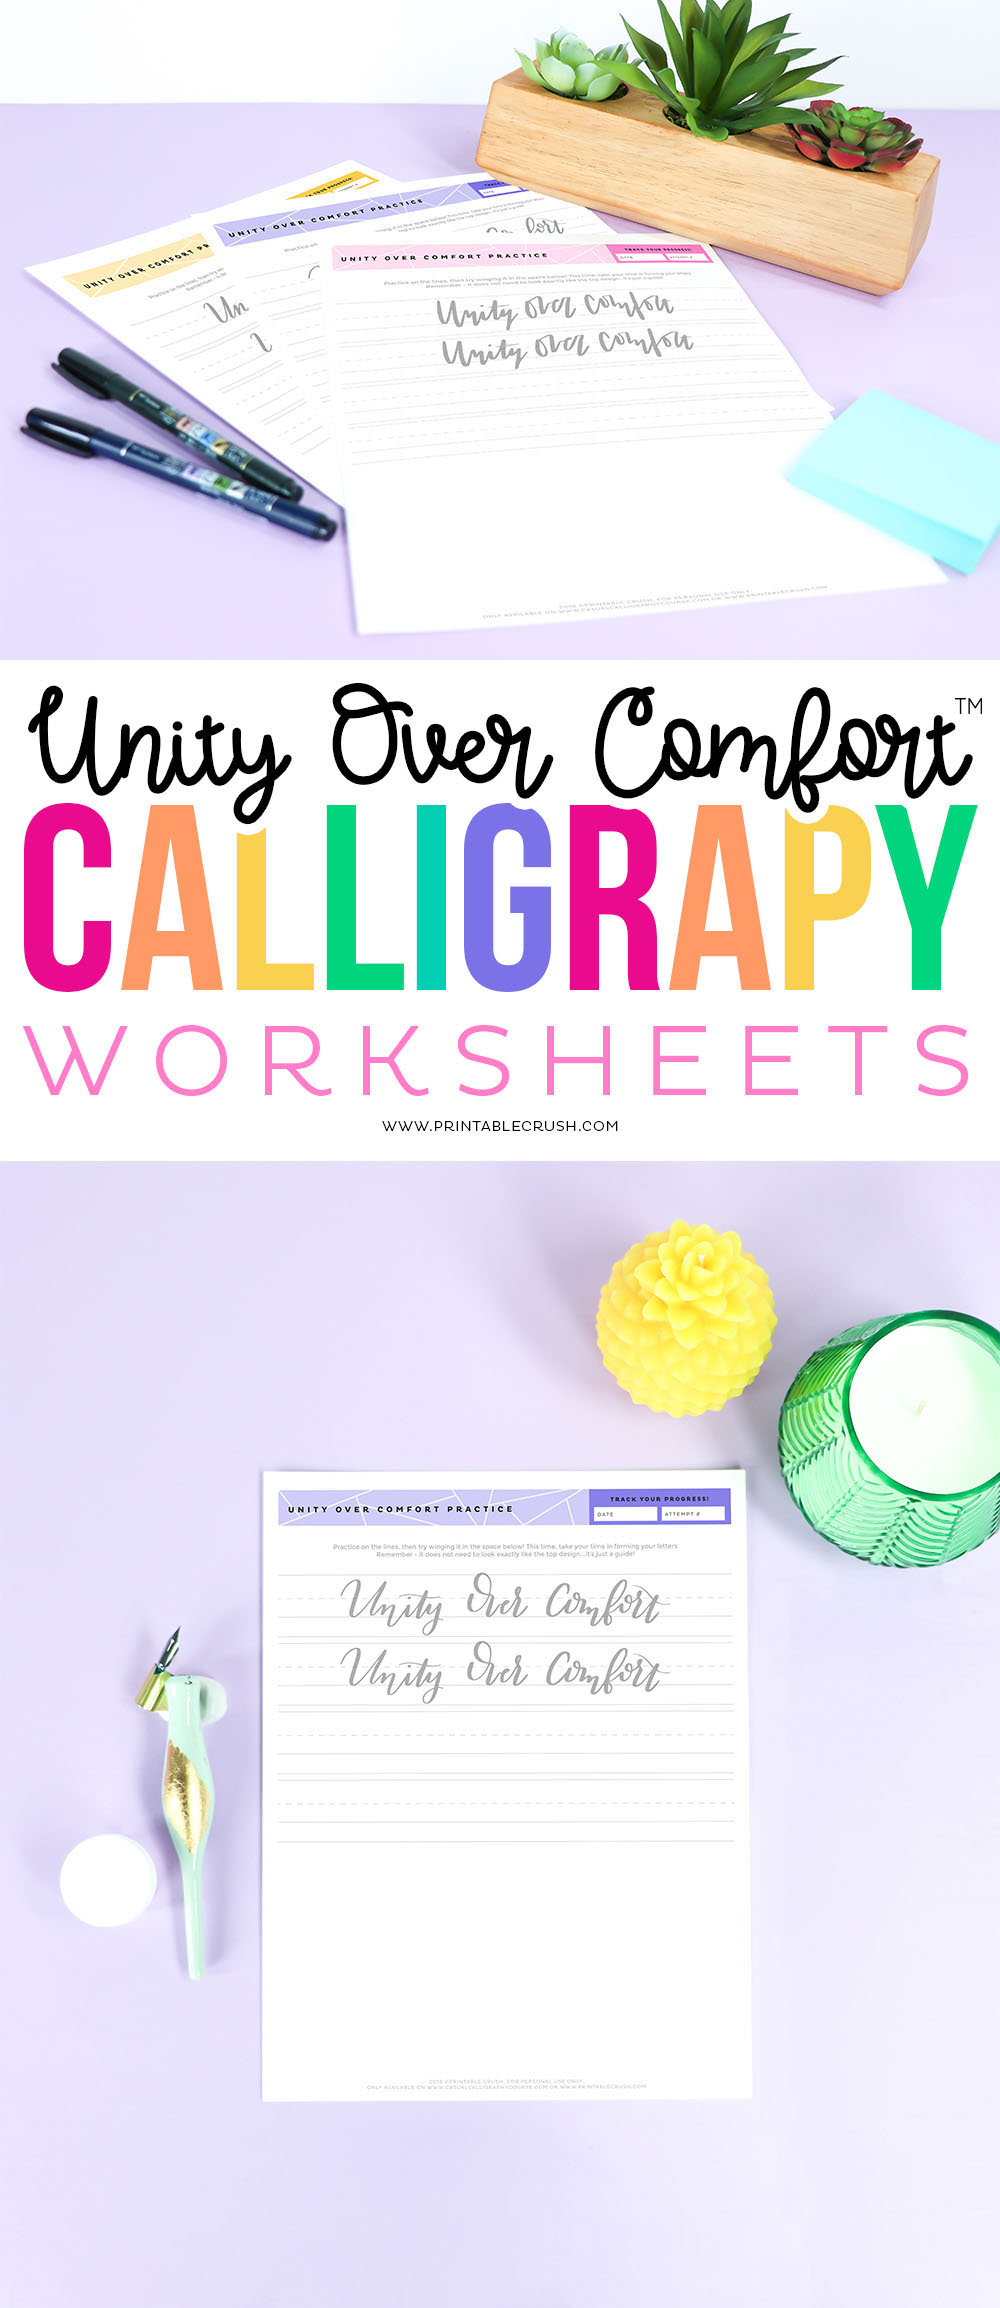 Download these 4 FREE Unity Over Comfort Calligraphy Worksheets, plus I'm giving 3 tips on how to encourage racial UNITY in your community!